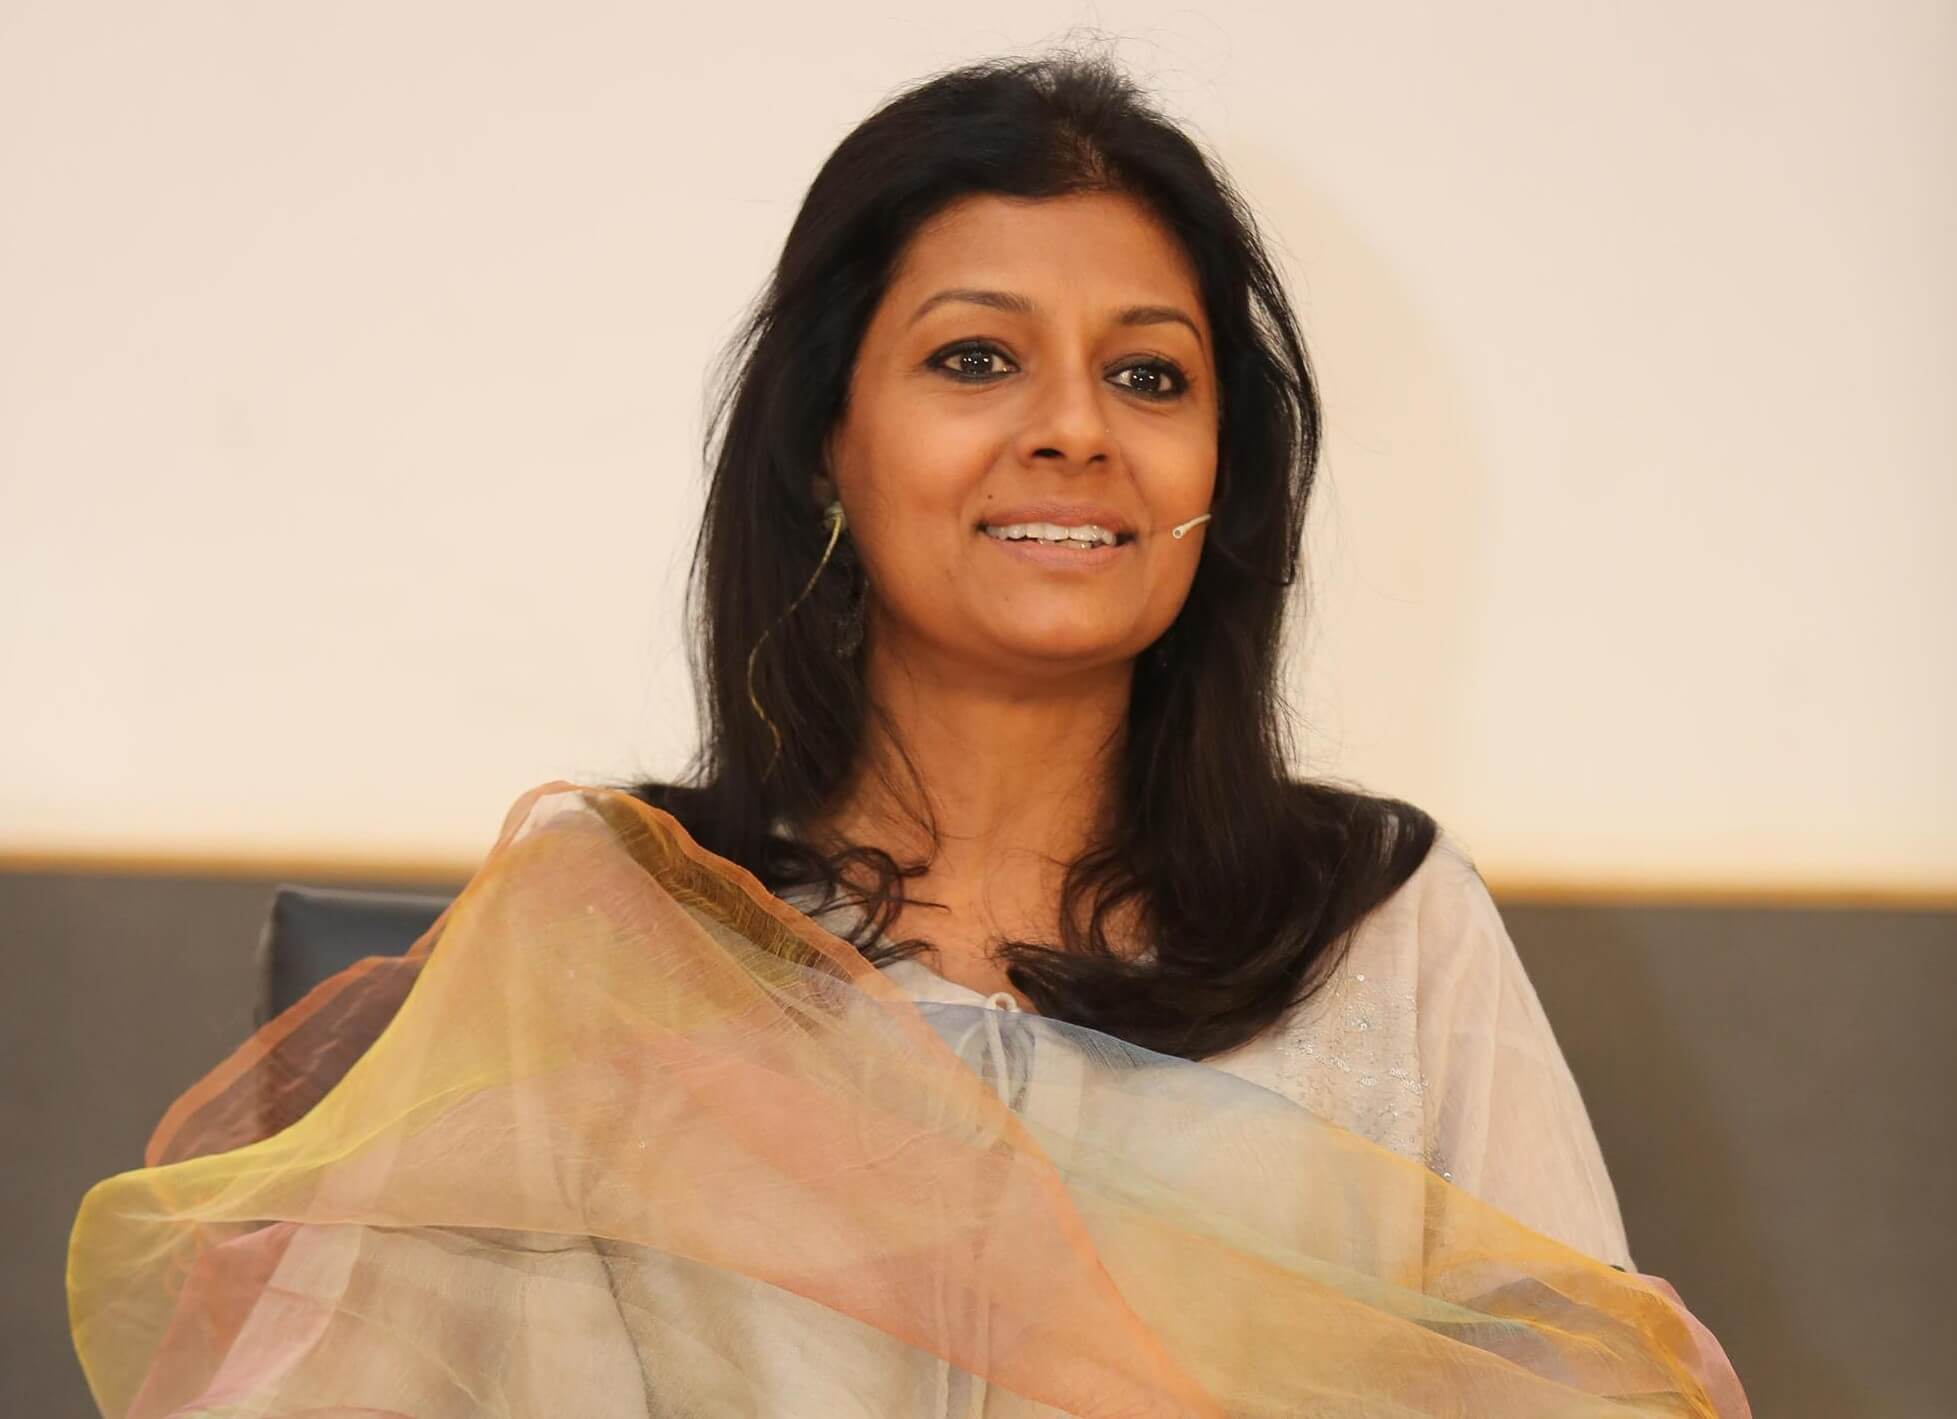 Remarks on Complexion Very Dangerous : Nandita Das